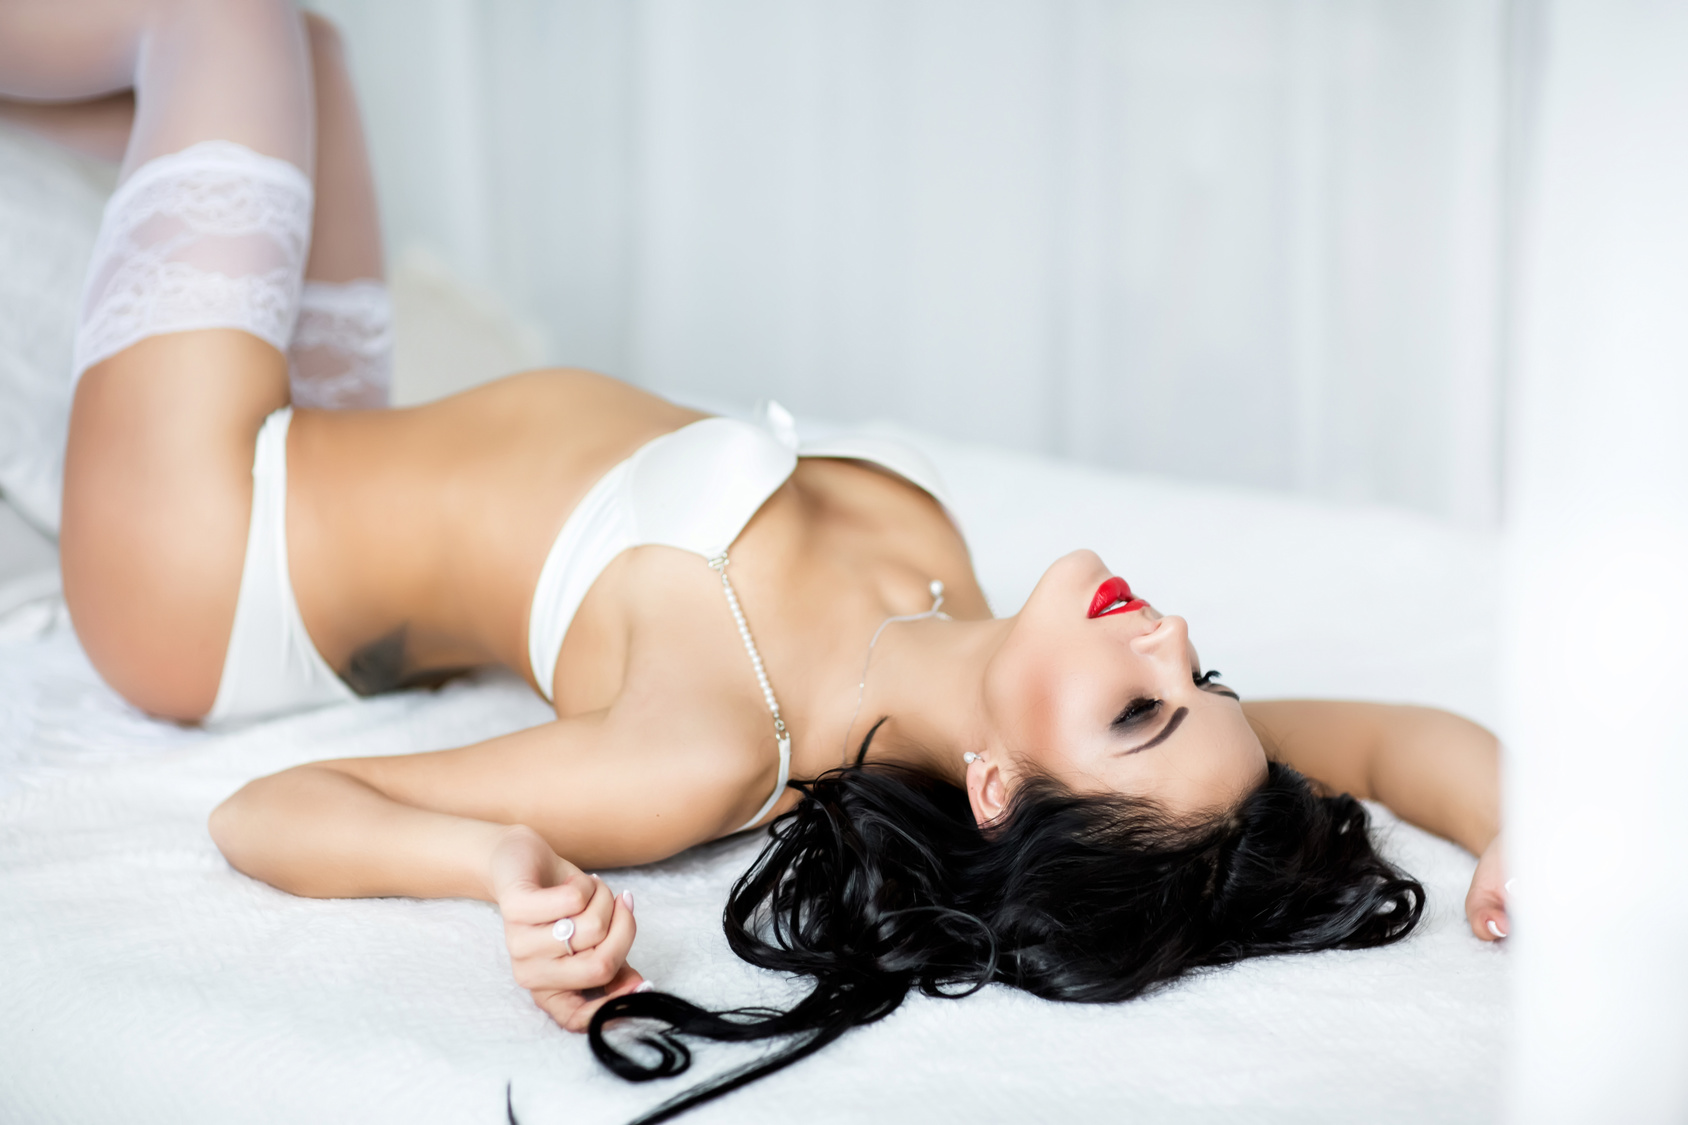 erotical massage real  escort